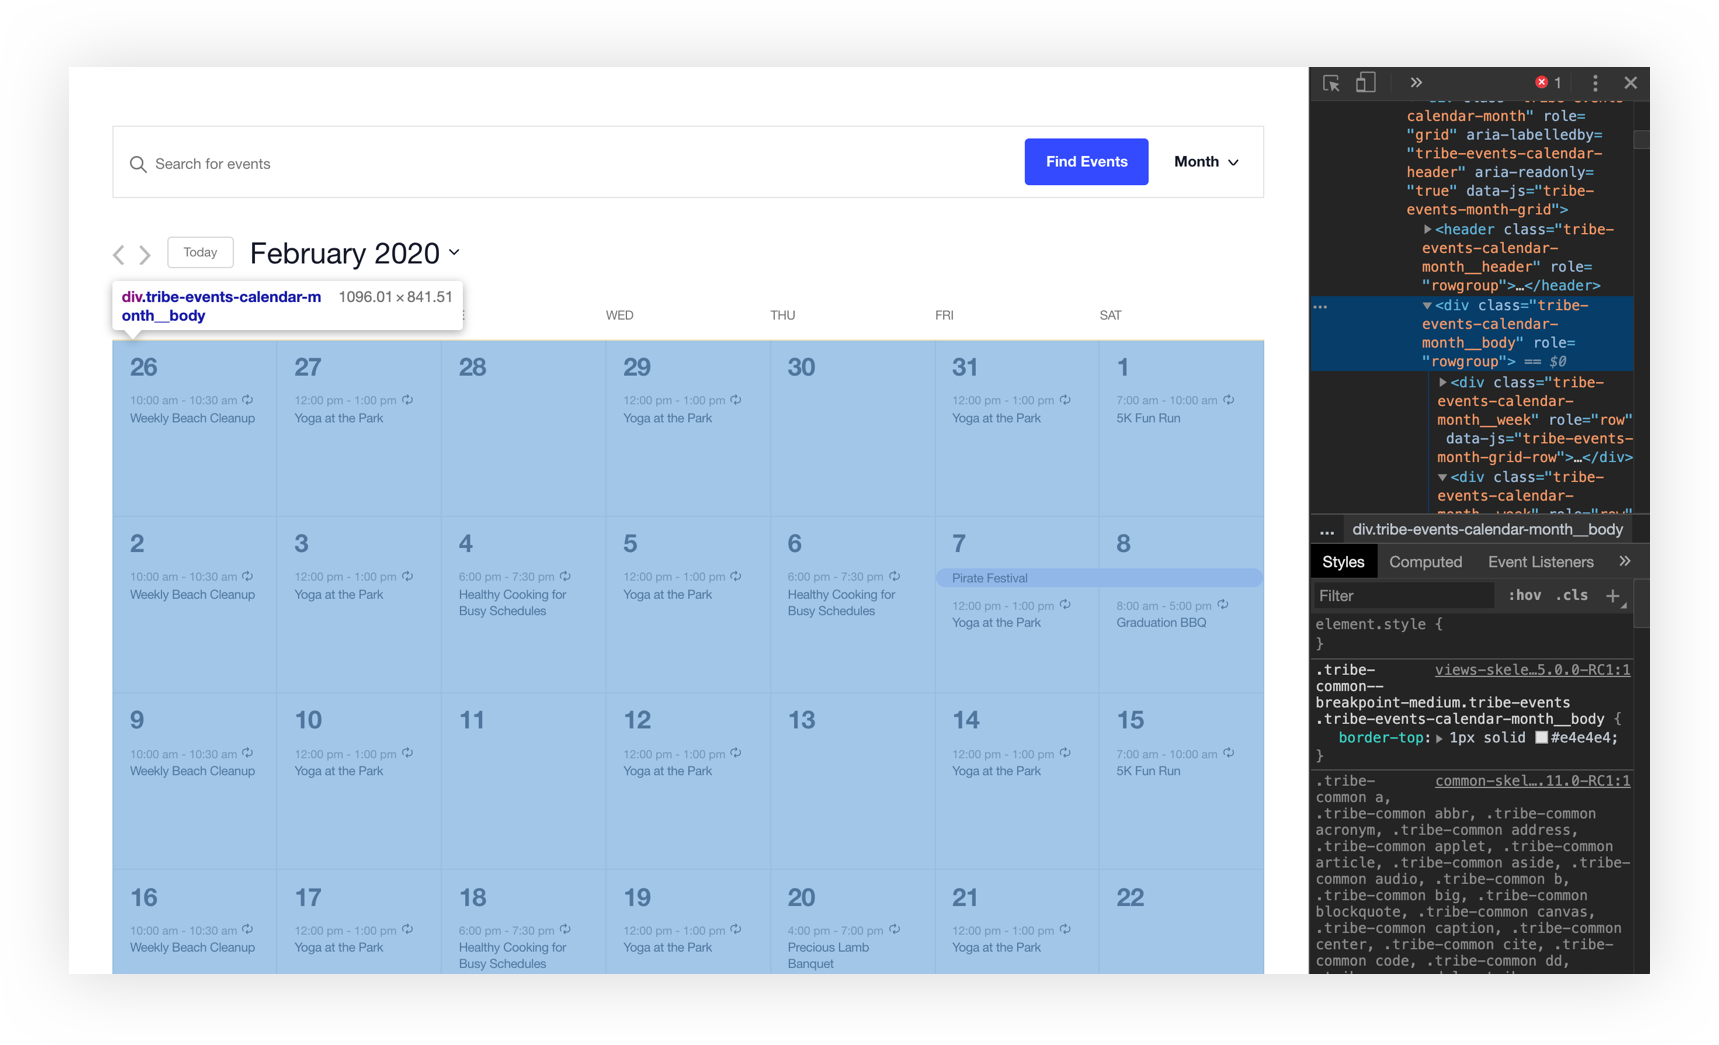 Screenshot off the calendar month view with Chrome's developer tools window open.